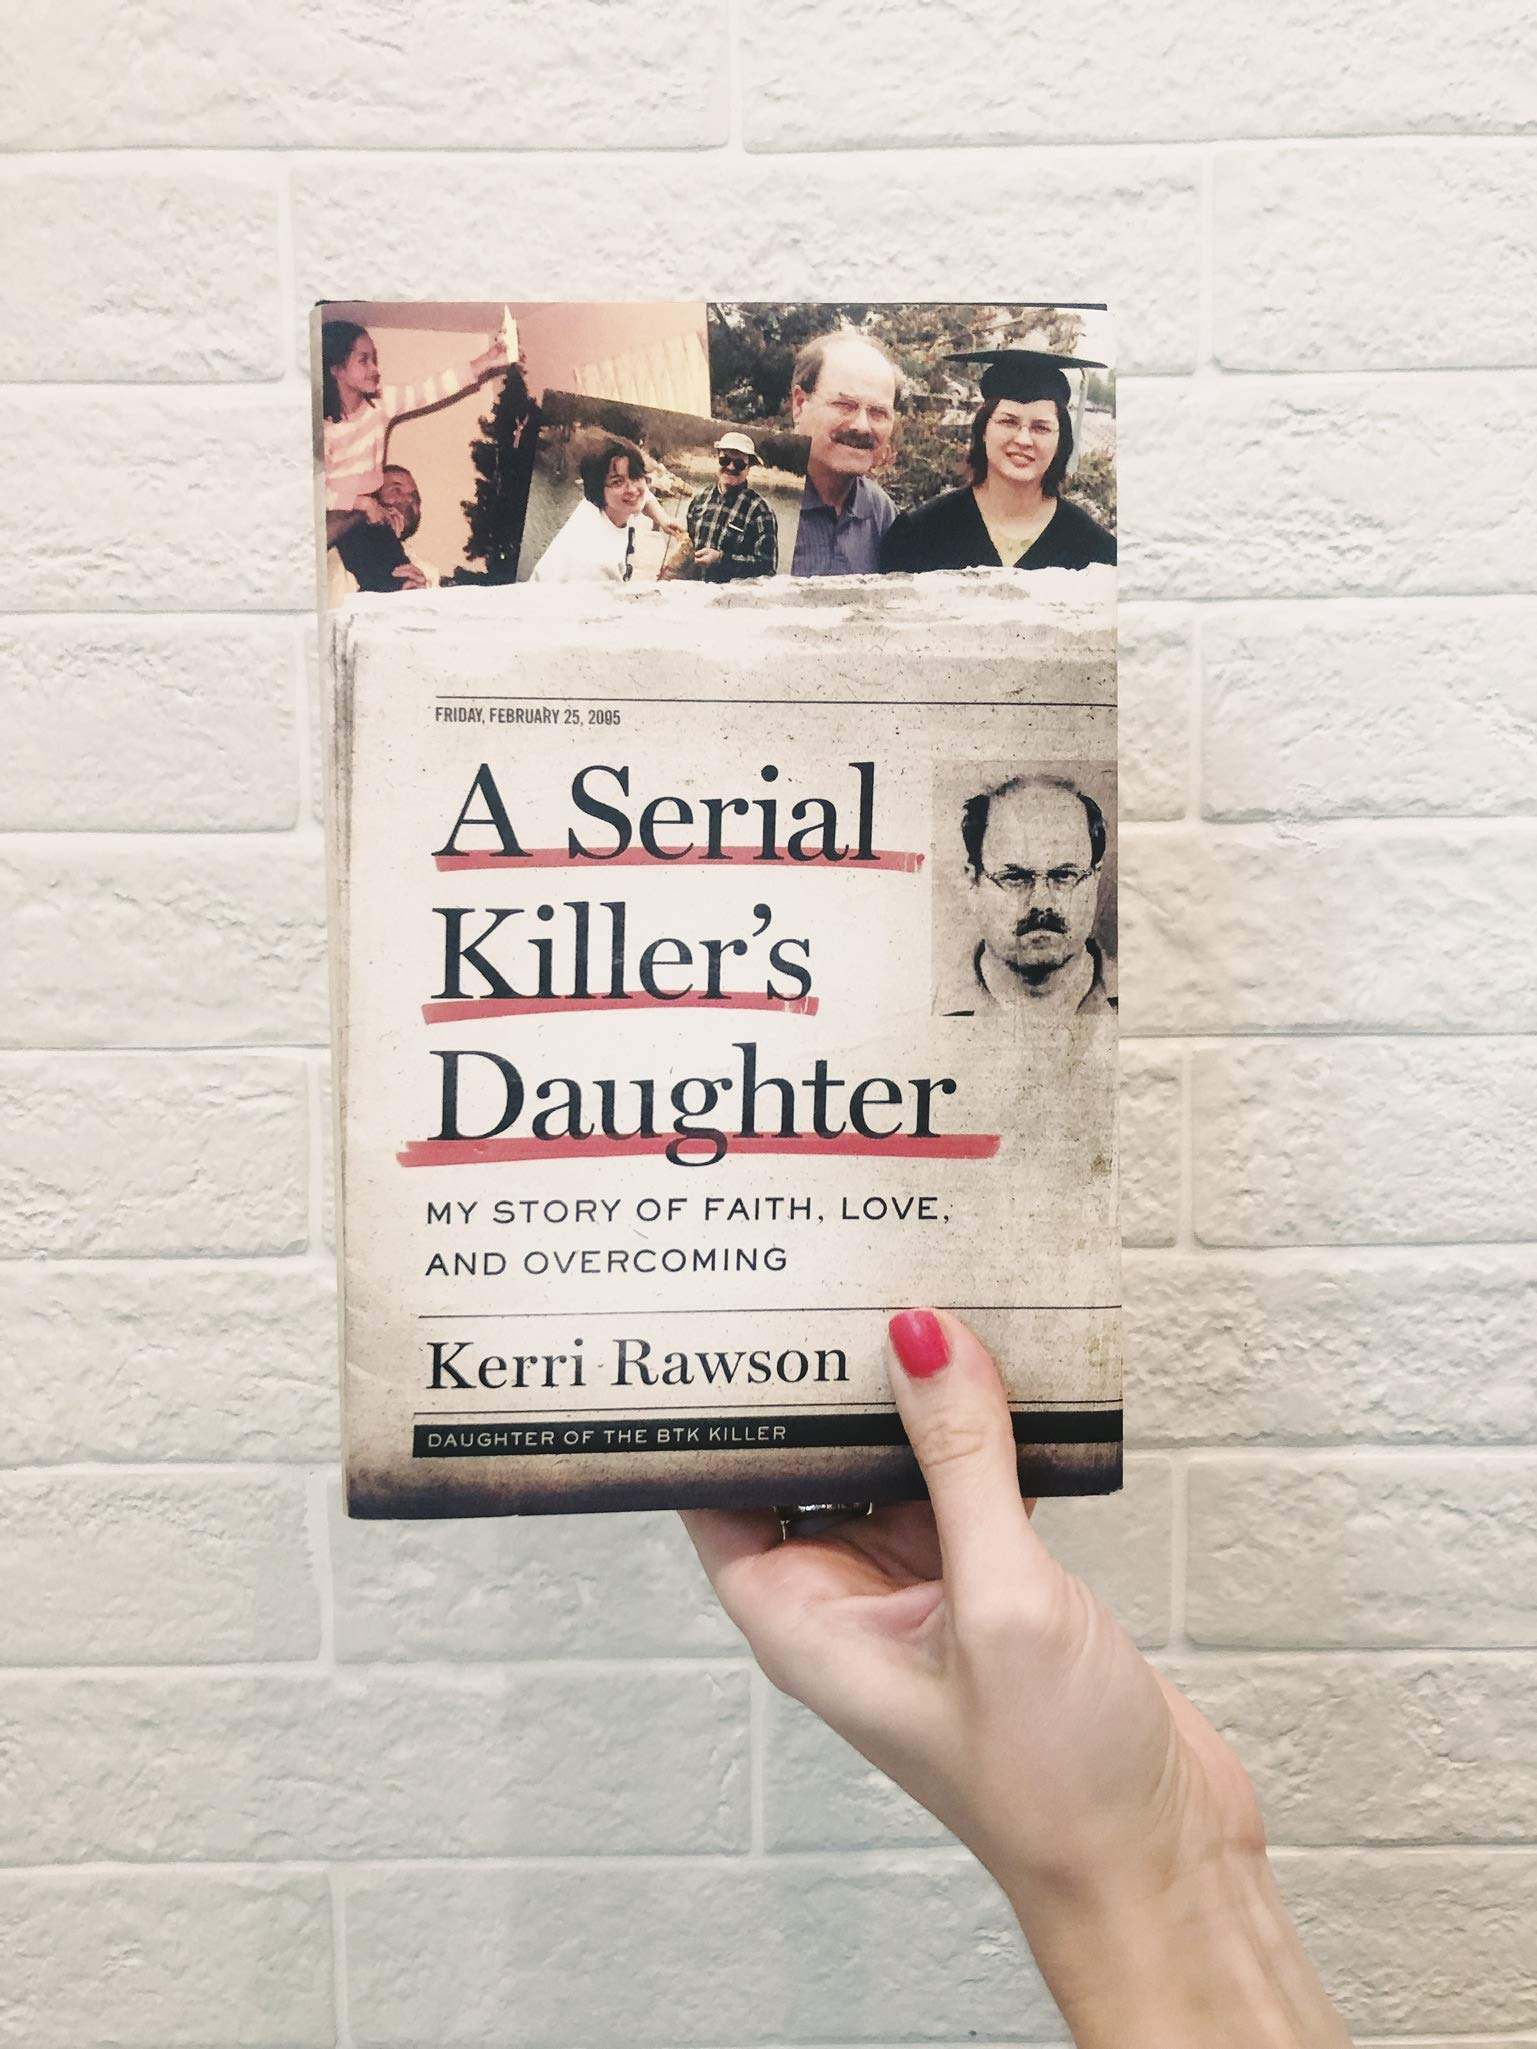 Love A Serial Killers Daughter and Overcoming My Story of Hope